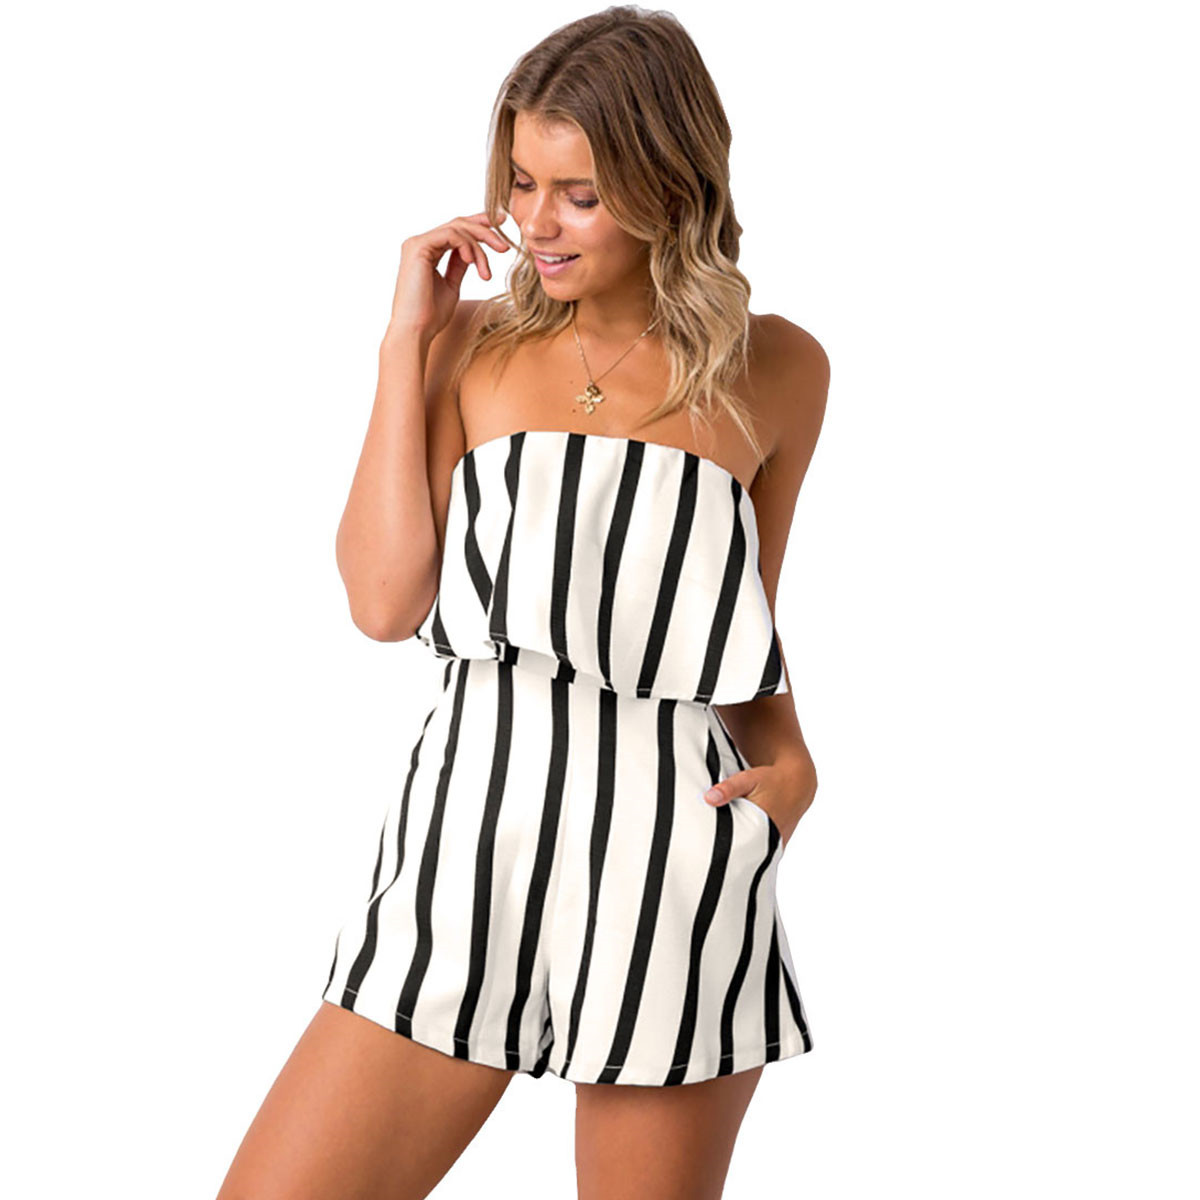 286484c9d Aphrodite Home Summer Women Strapless Playsuit Striped Rompers Ruffles  Sleeve Jumpsuit Backless Sexy Overall Beach Short Pants